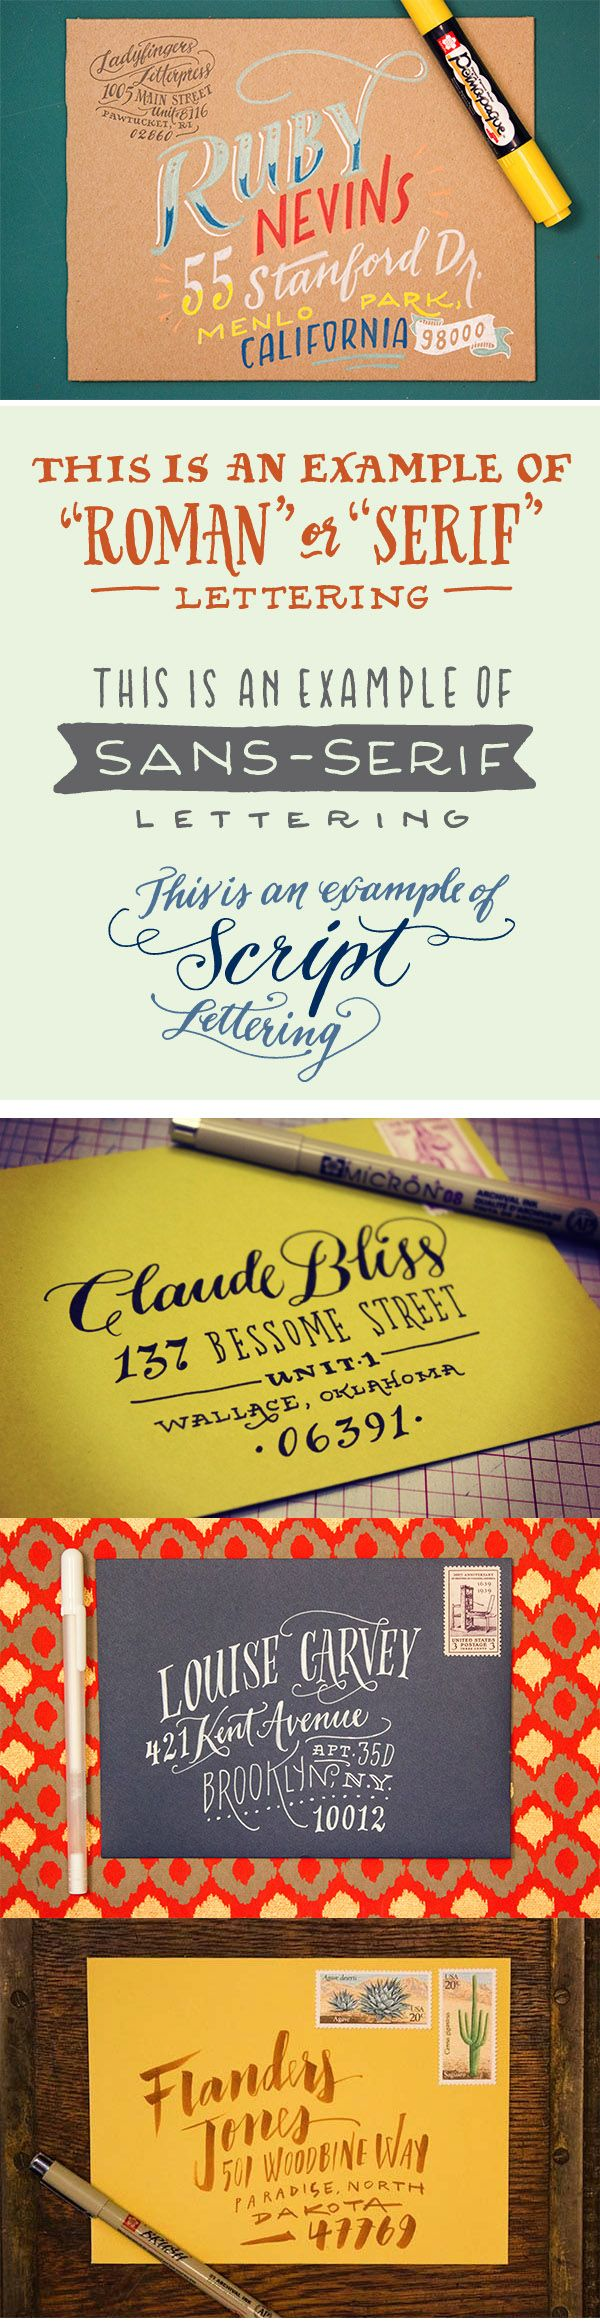 Best 20 letter addressing ideas on pinterest envelope lettering envelope address hand lettering tutorial from ladyfingers letterpress mitanshu Gallery